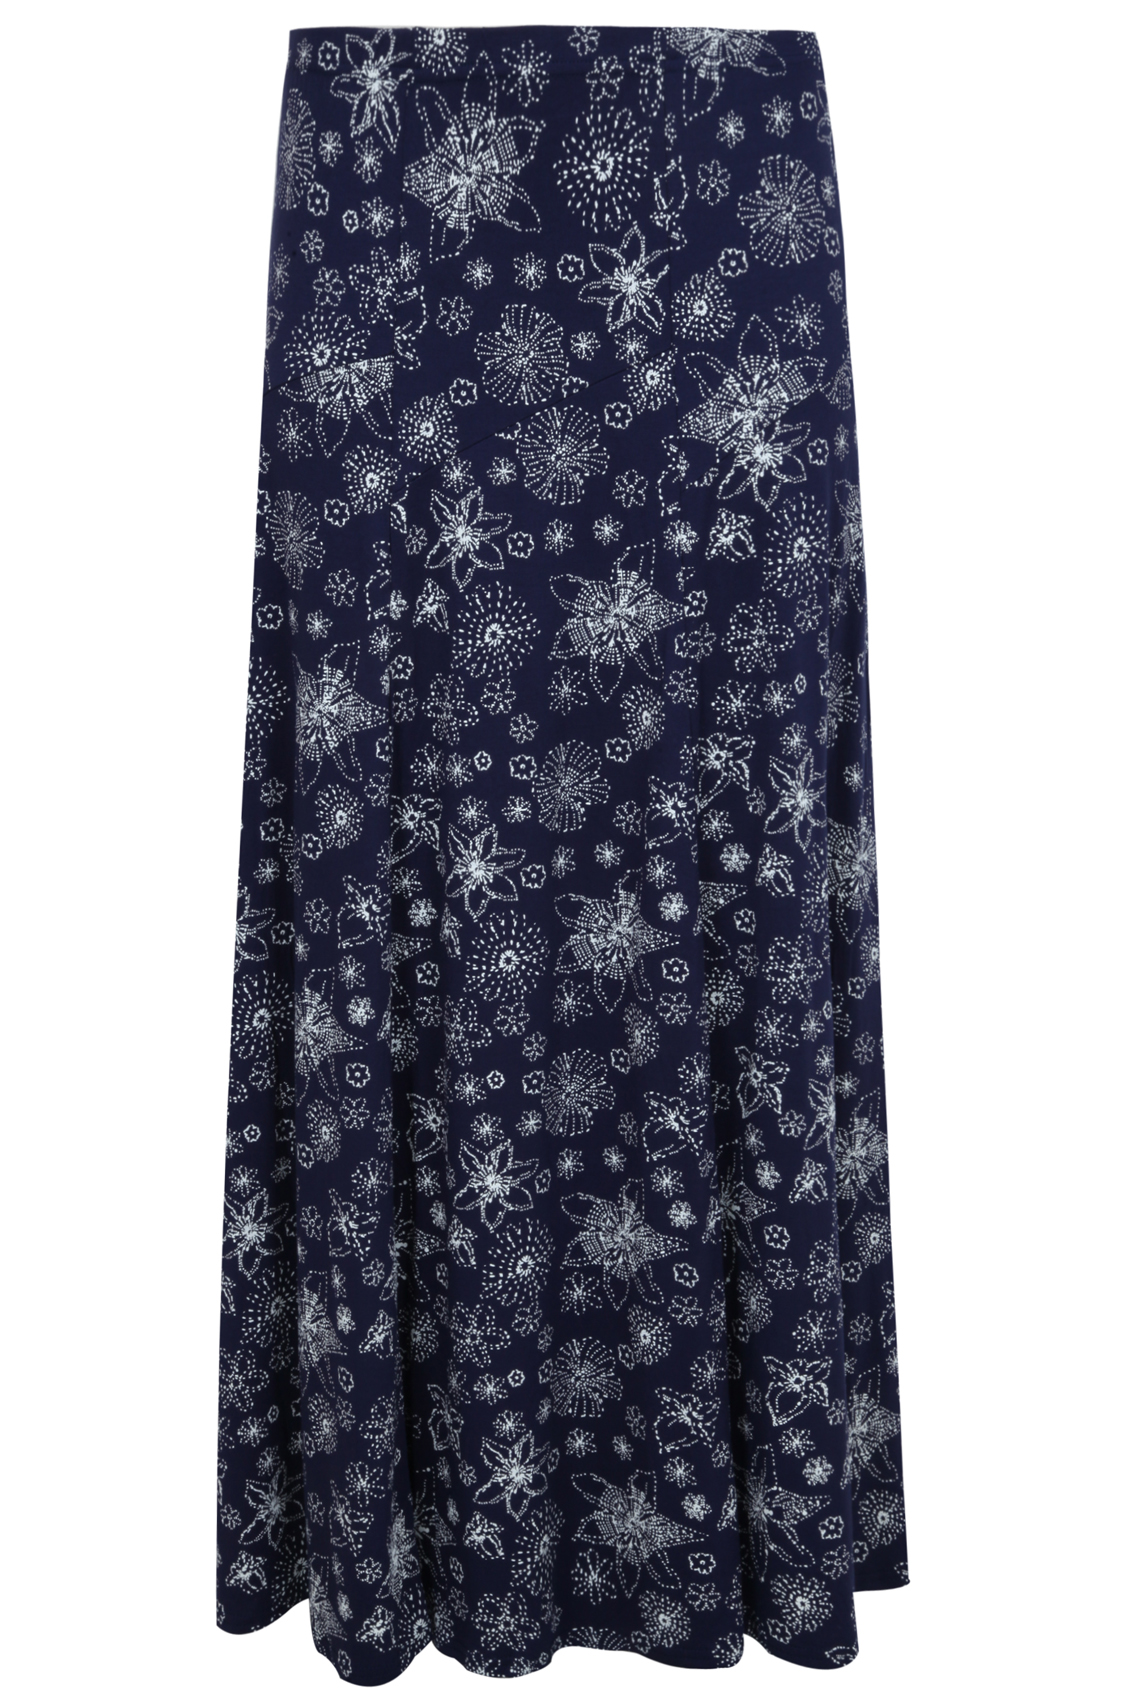 navy white dotted floral print jersey maxi skirt with